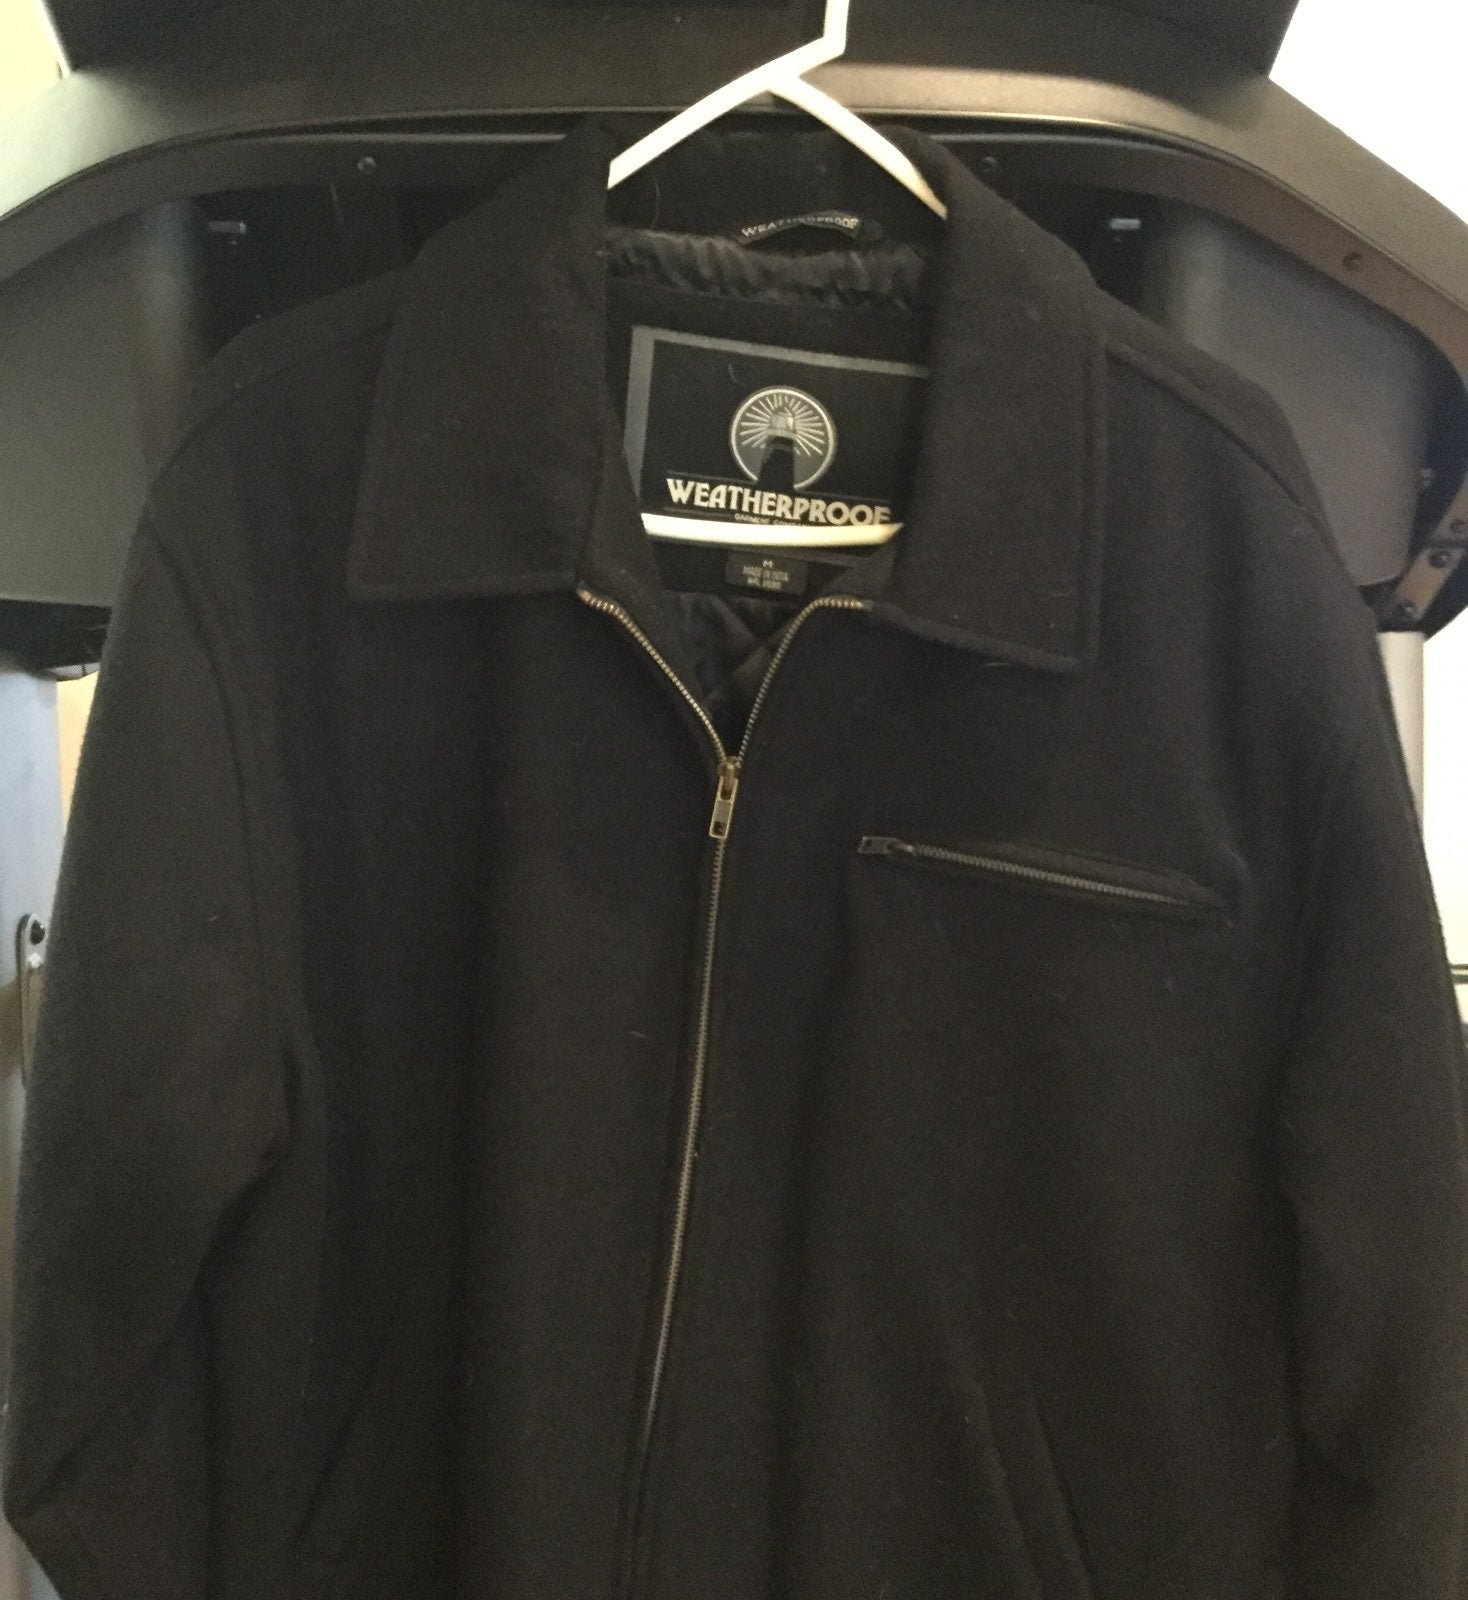 mens Jacket by Weatherproof.excellent co